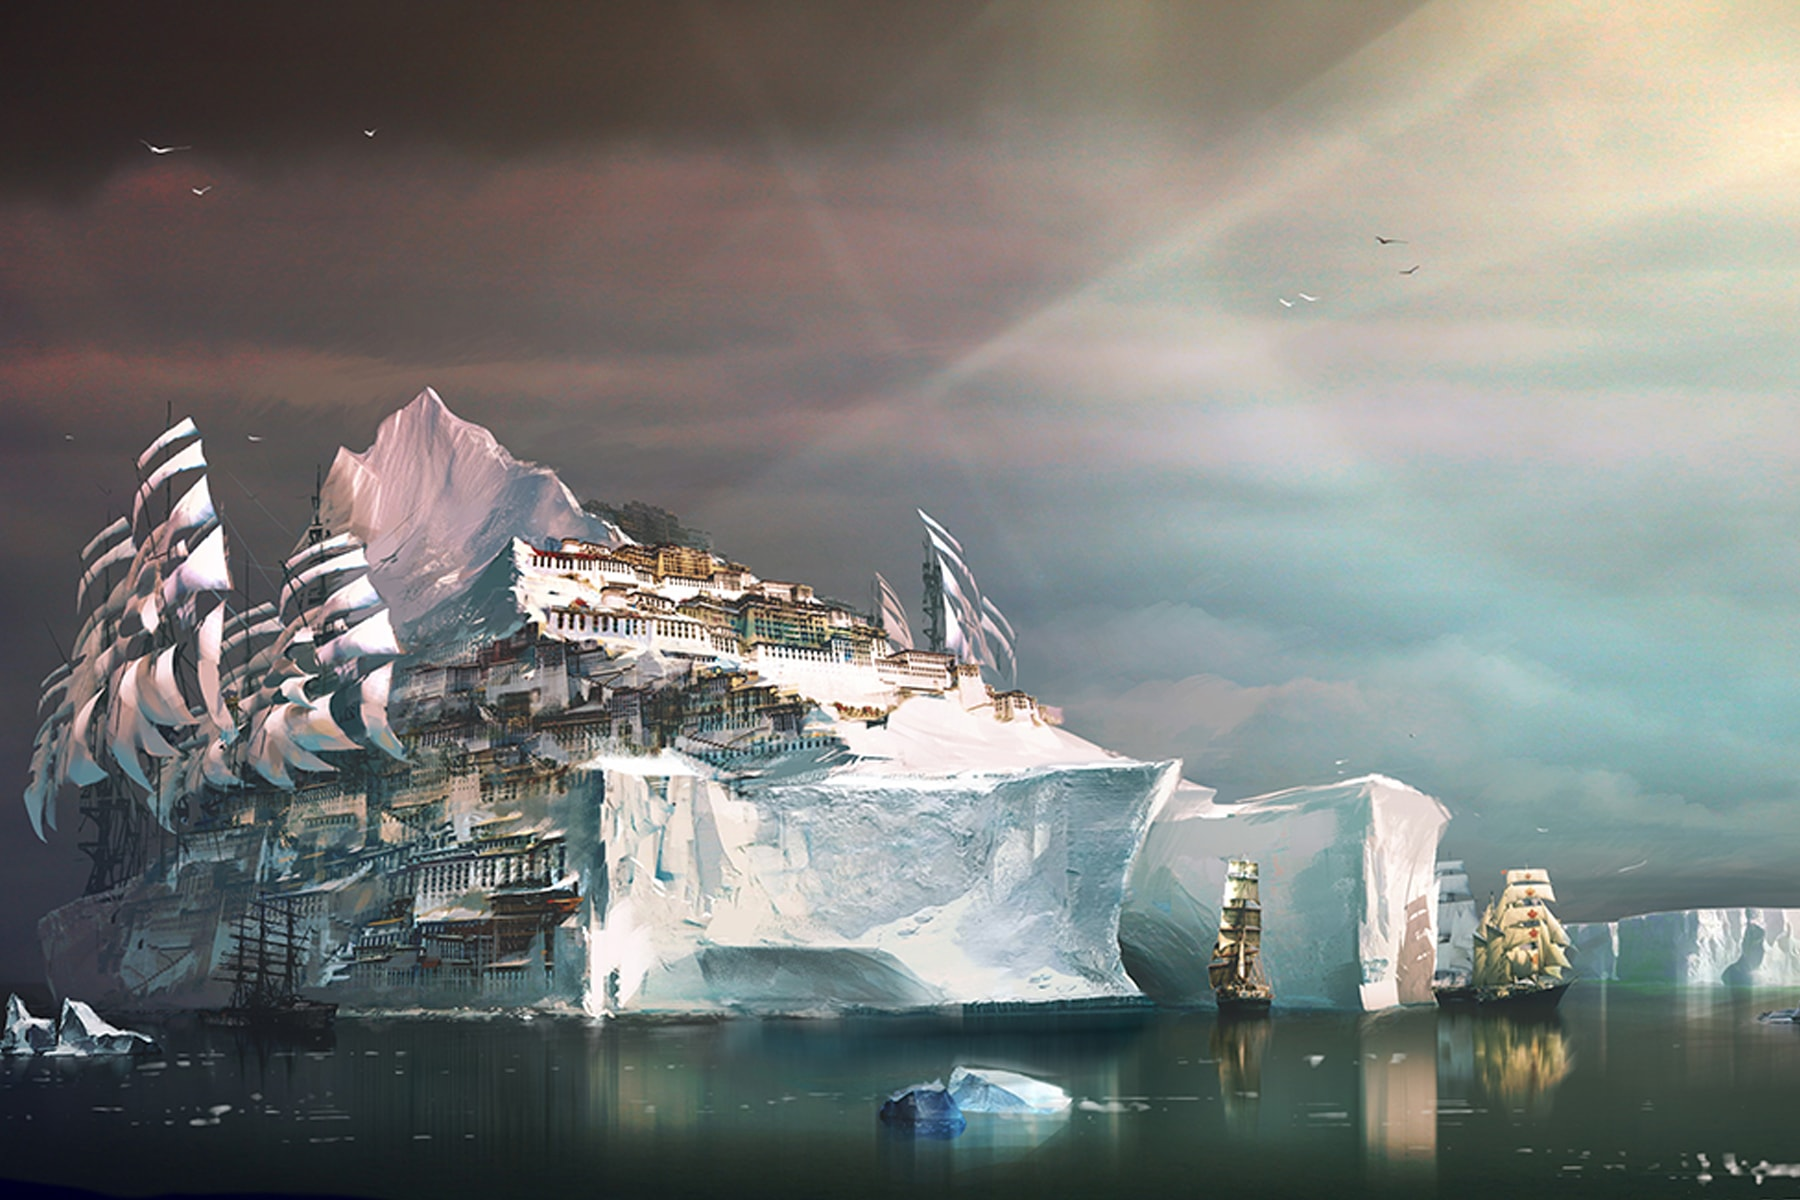 Illustration of a huge iceberg with a village built on top